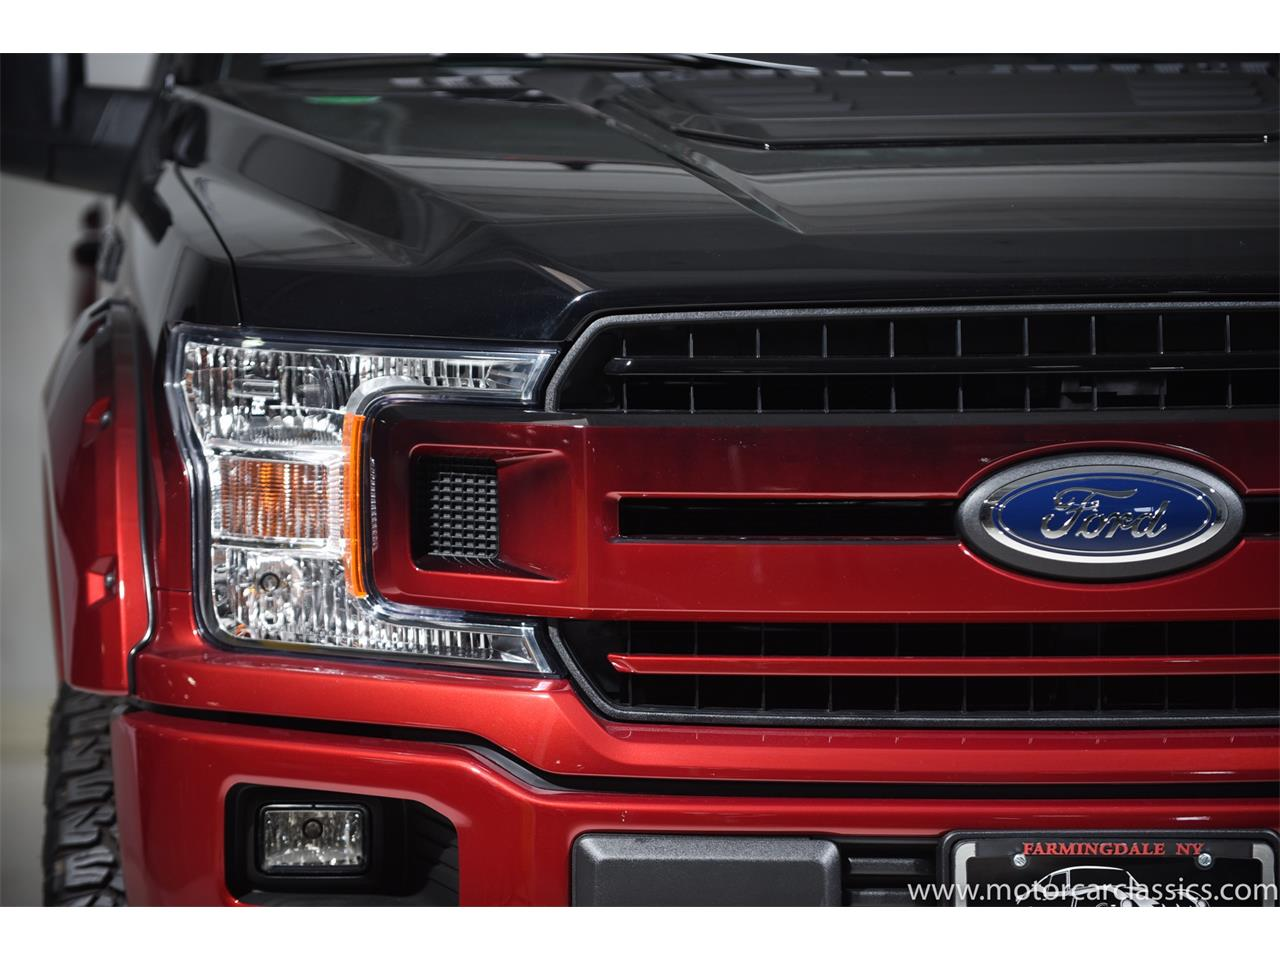 2018 Ford F150 for sale in Farmingdale, NY – photo 14